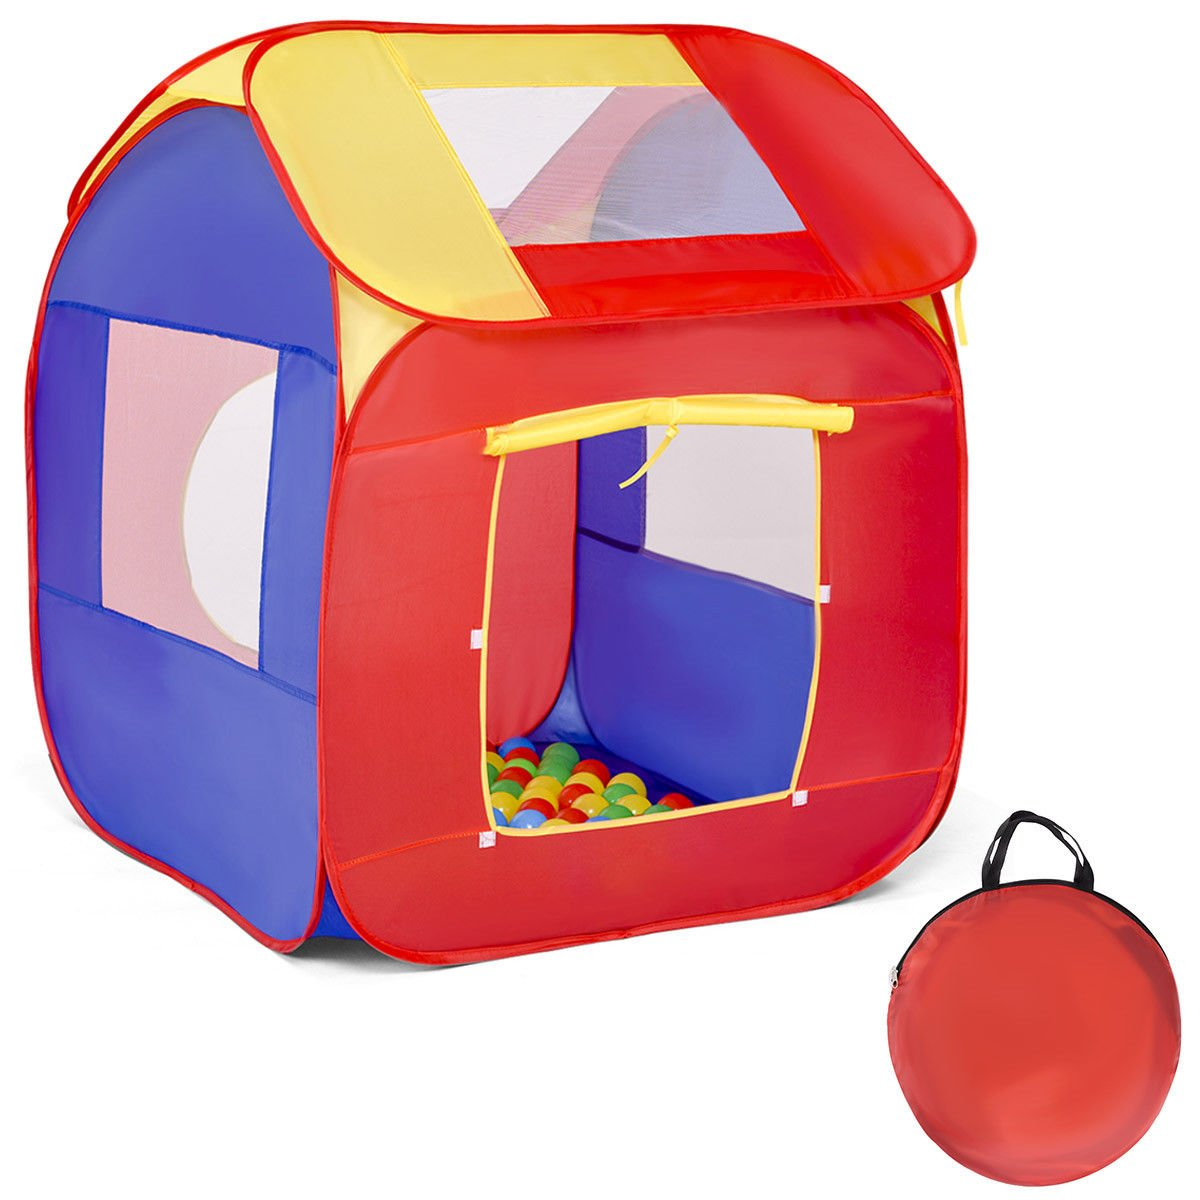 Globe House Products GHP 34''x34''x40'' 170T Polyester Fabric Kids Portable Playhouse Tent with 100 PVC Balls